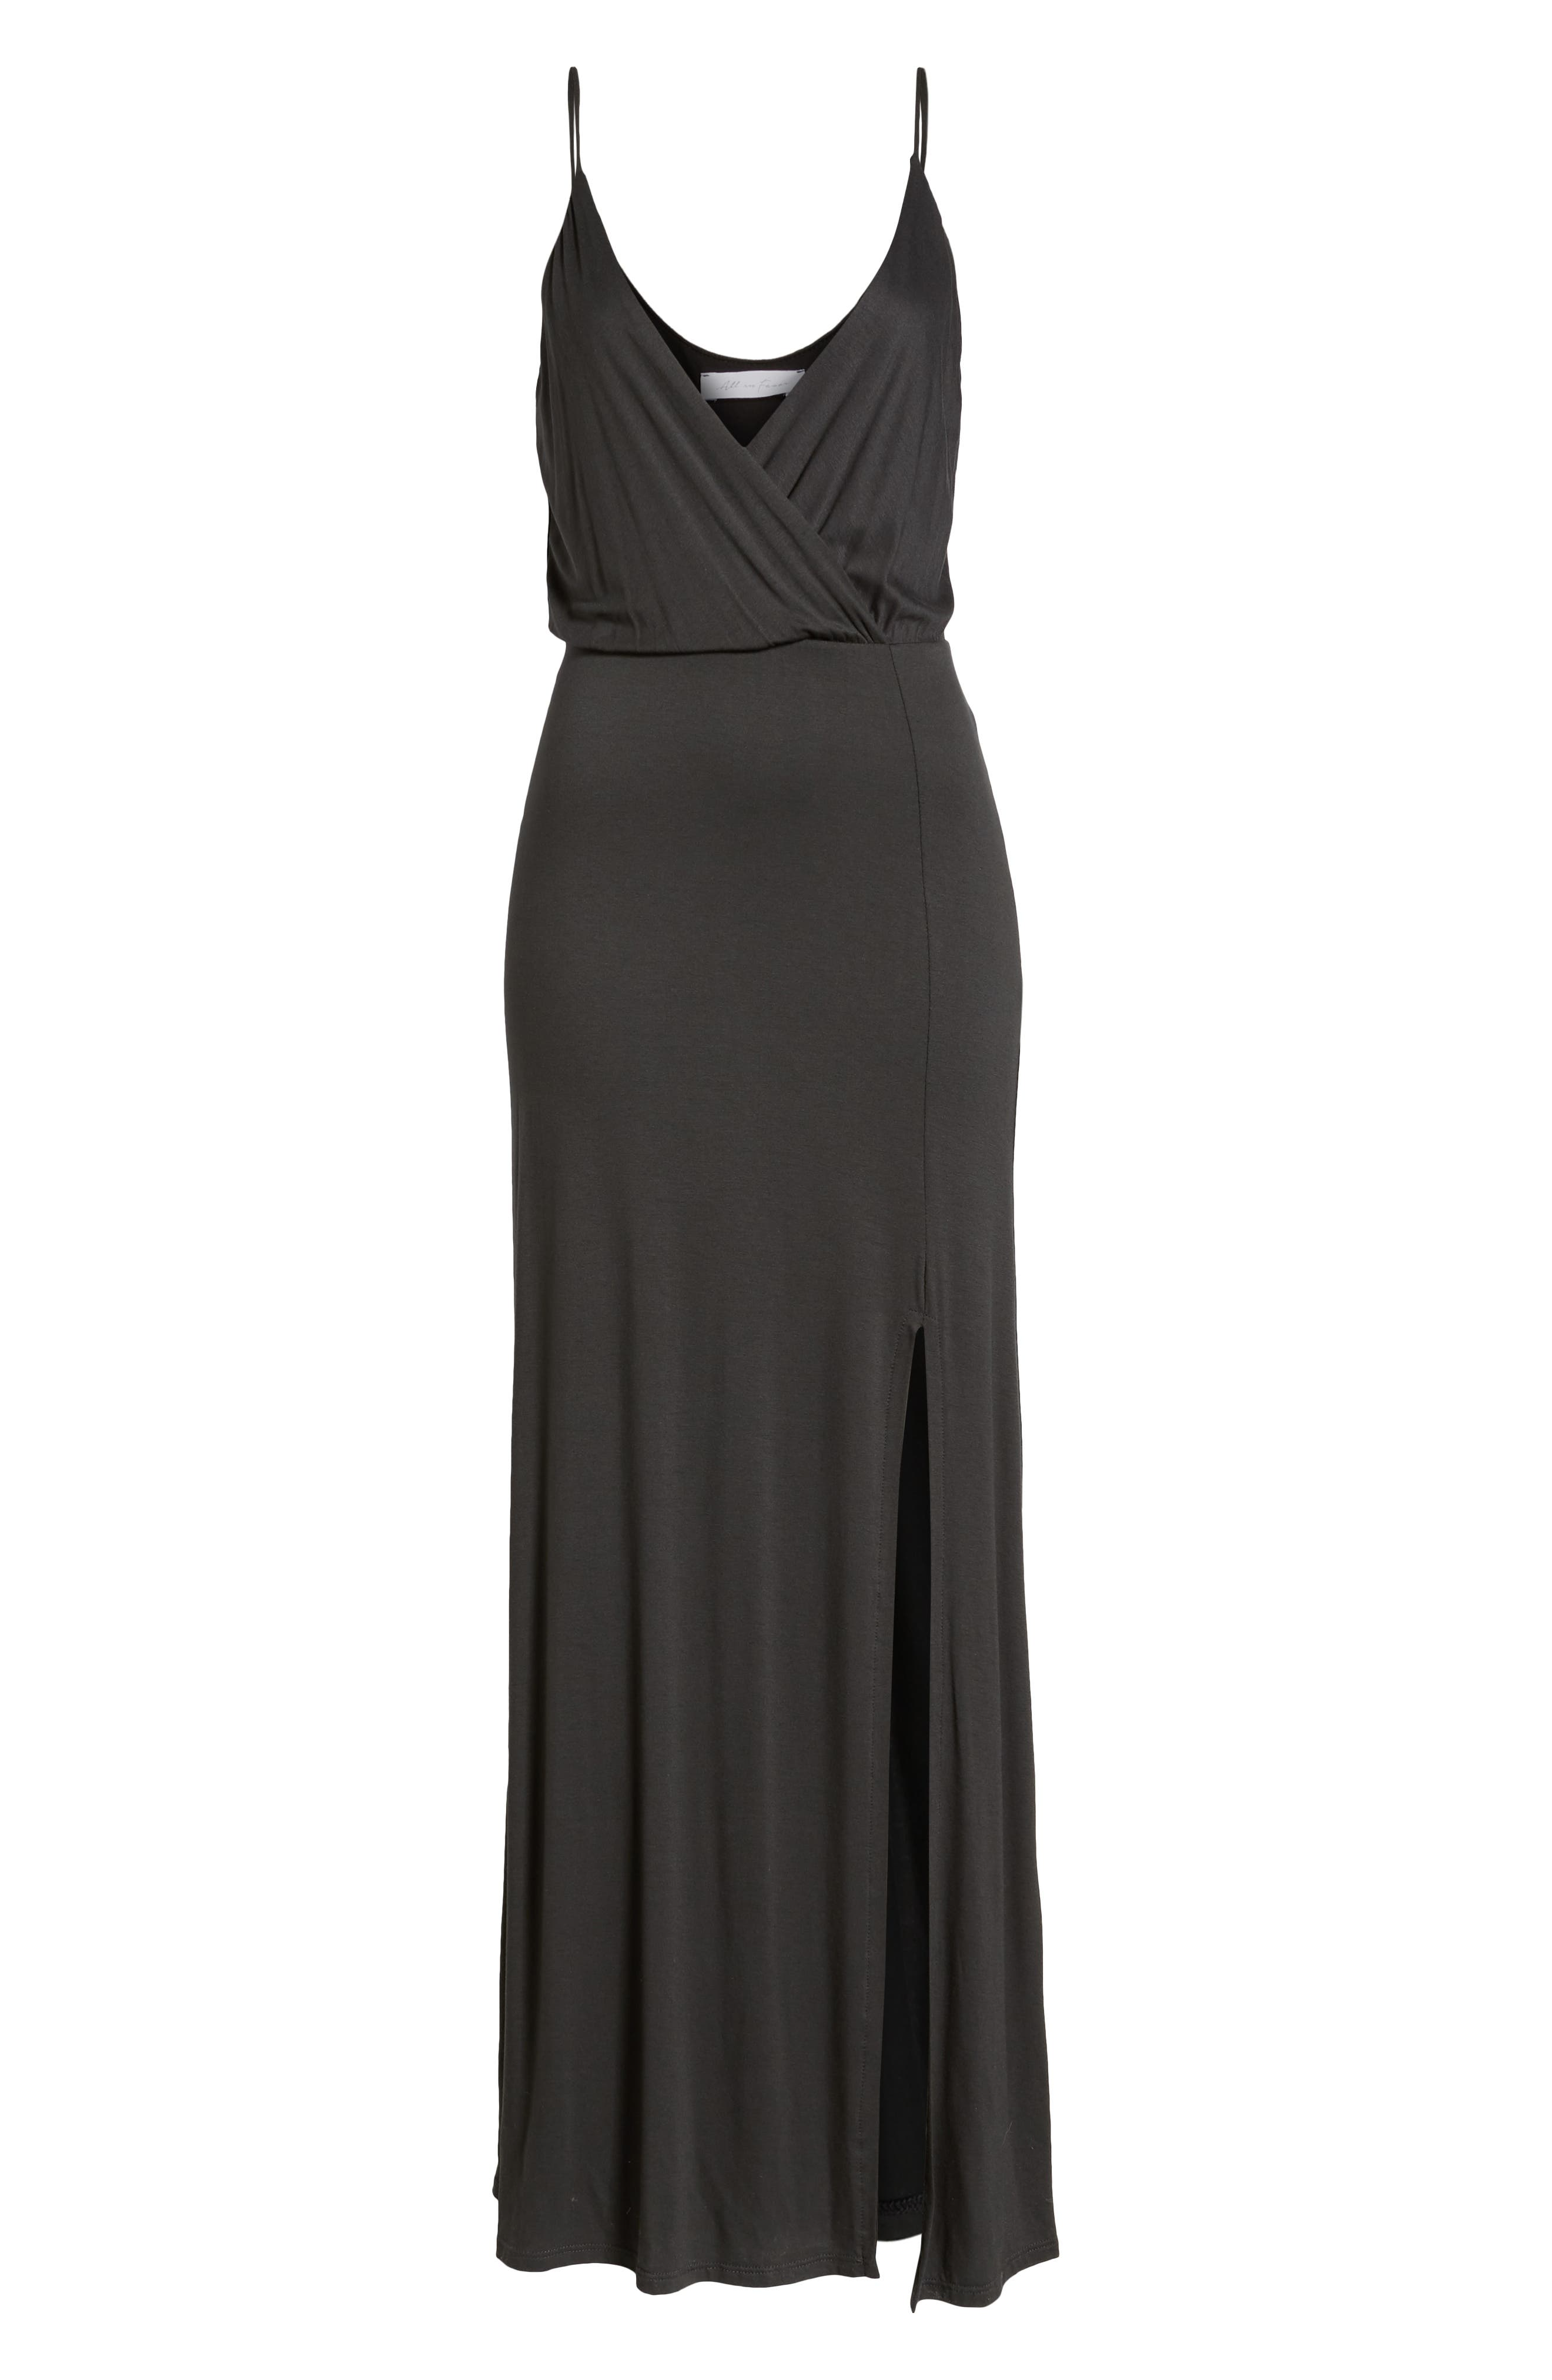 ALL IN FAVOR, Surplice Neck Knit Maxi Dress, Alternate thumbnail 7, color, CHARCOAL